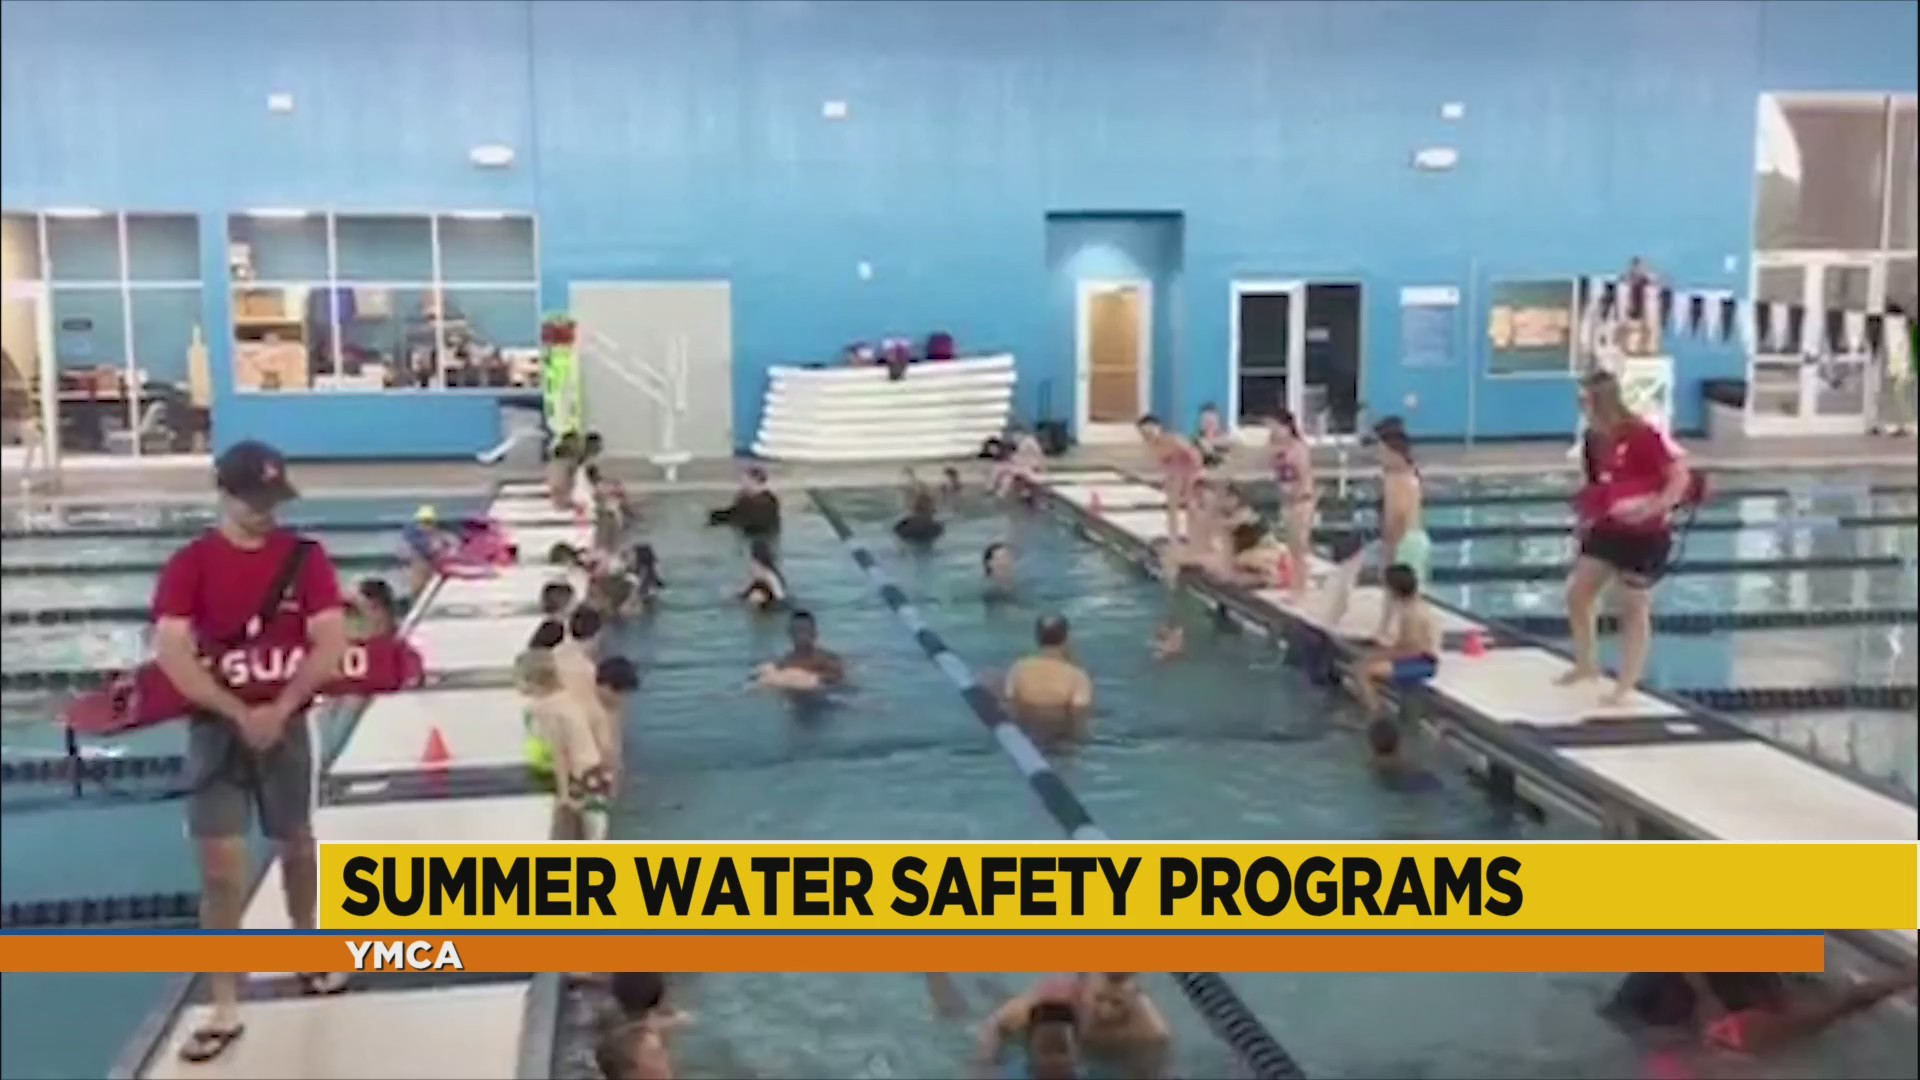 Summer Water Safety Programs with YMCA